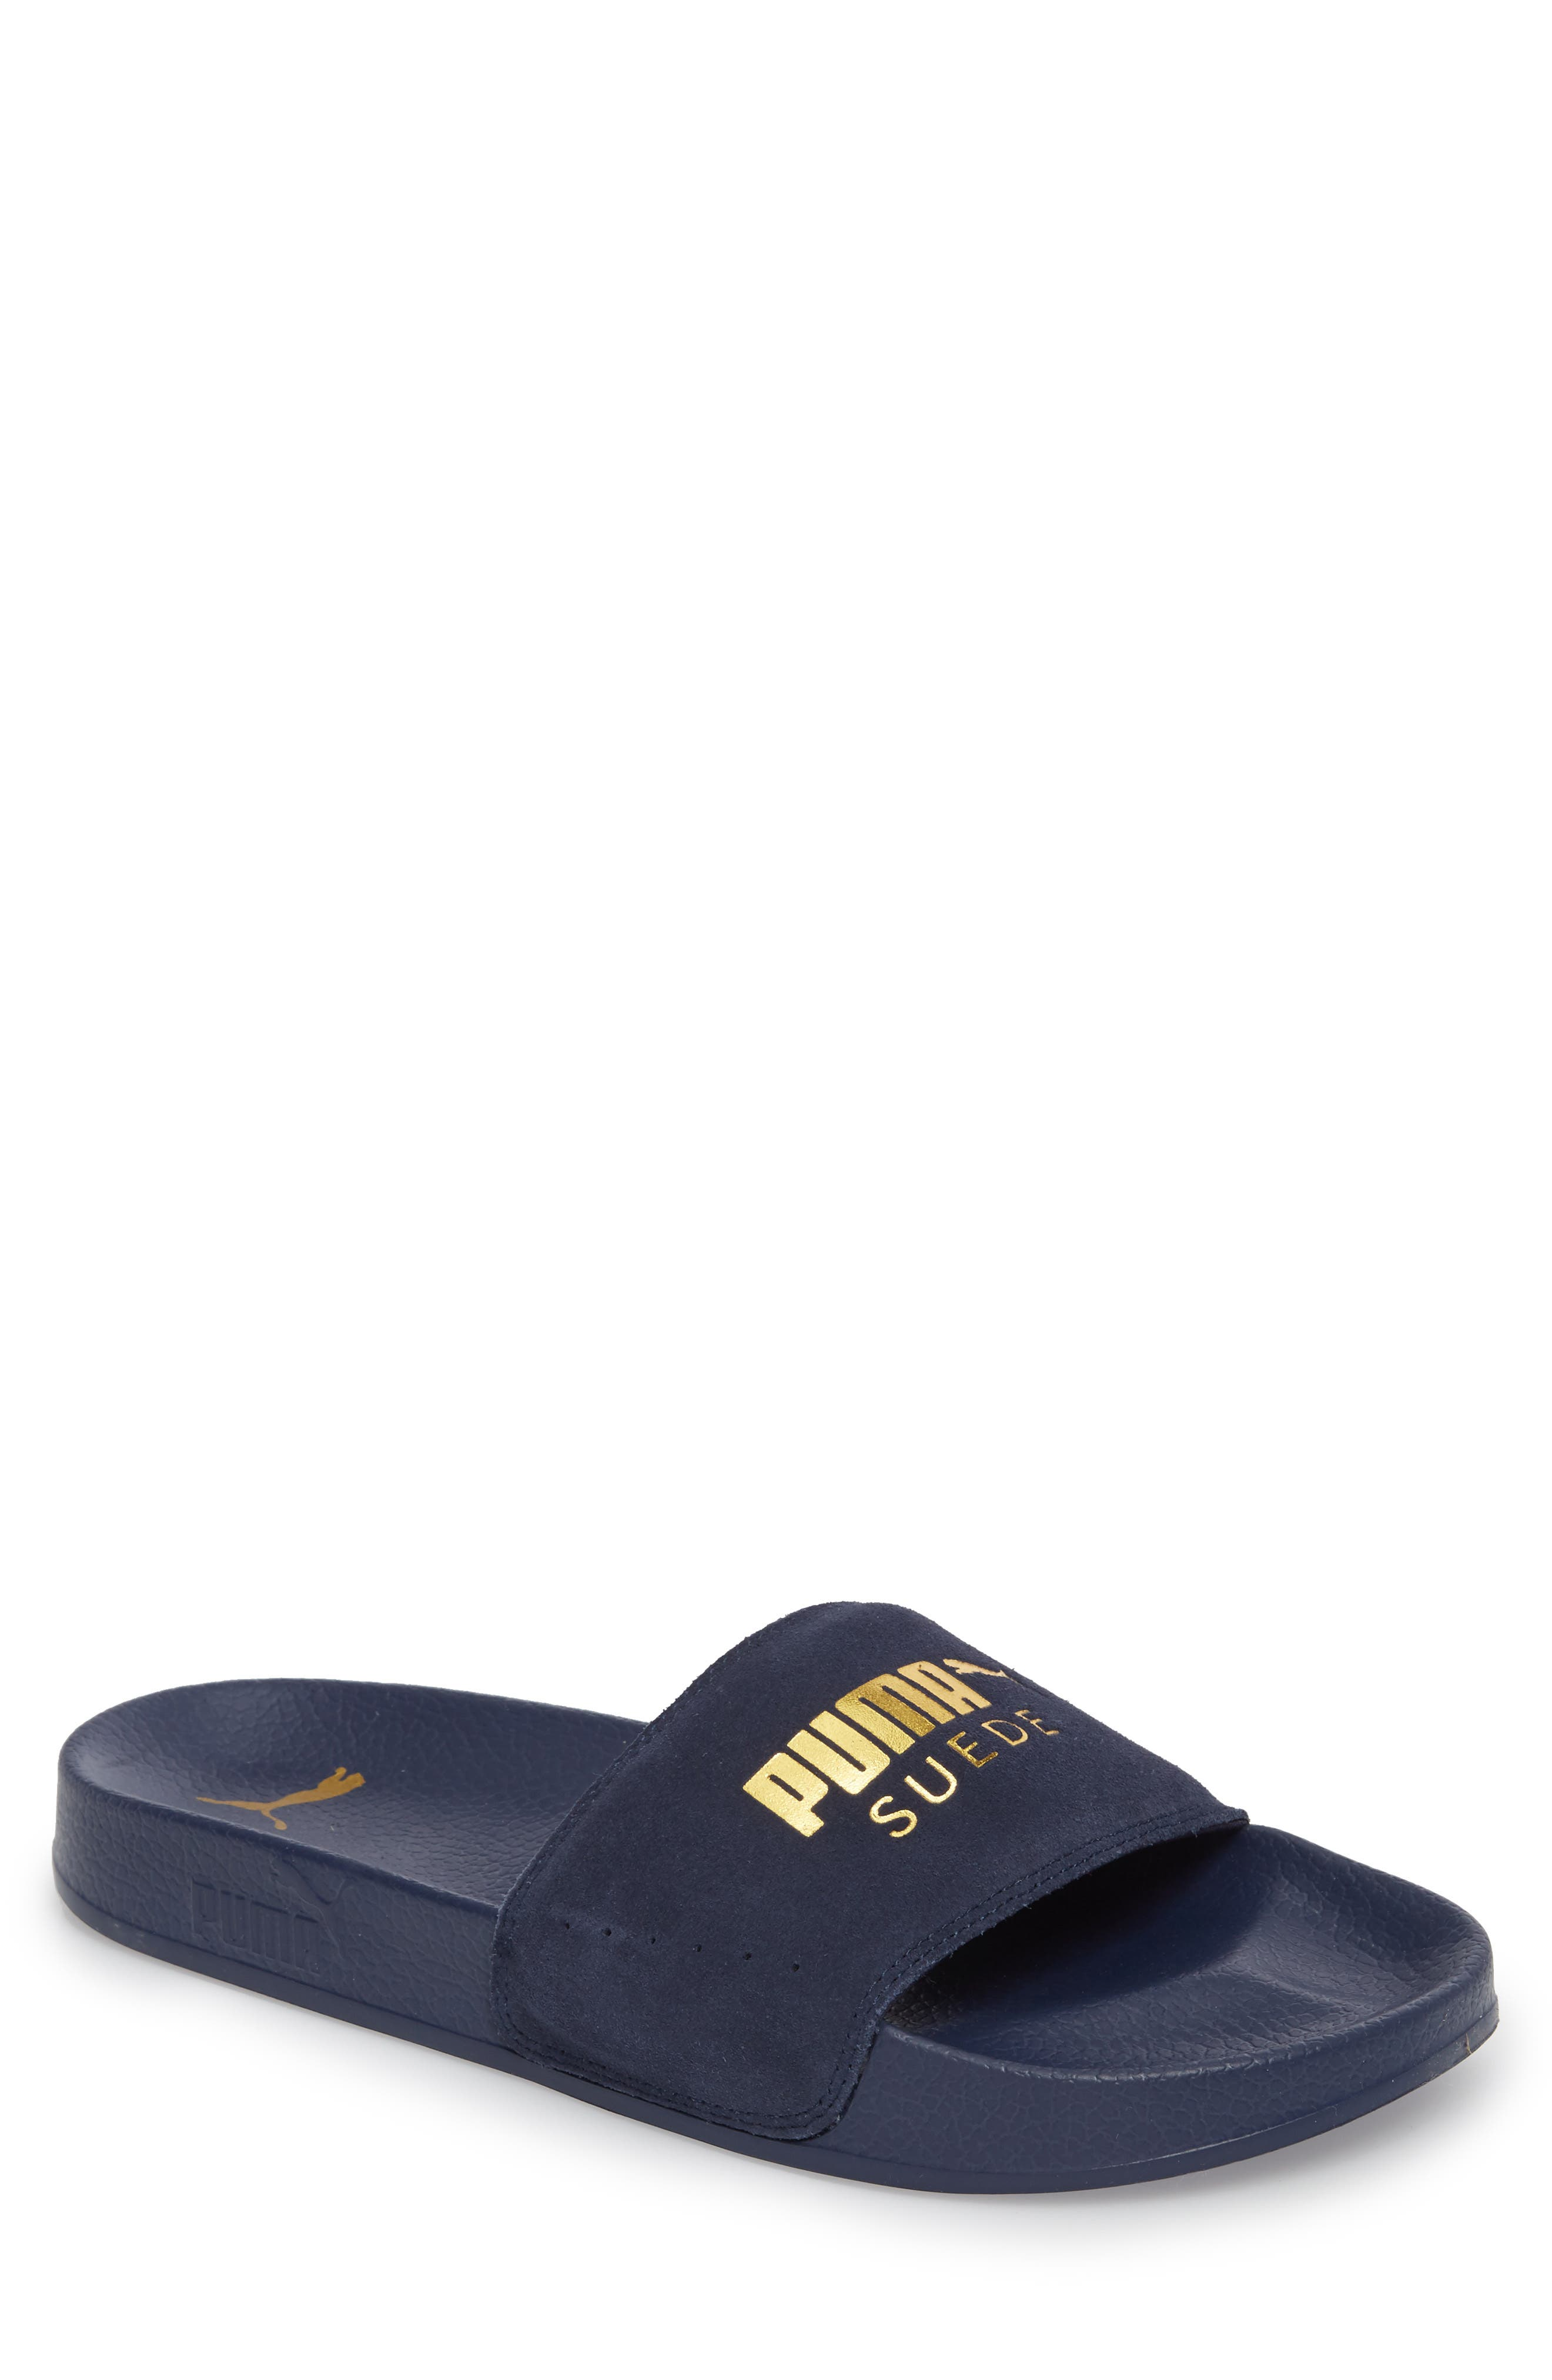 Leadcat Suede Slide Sandal,                         Main,                         color, Peacoat/ Gold Leather/ Suede